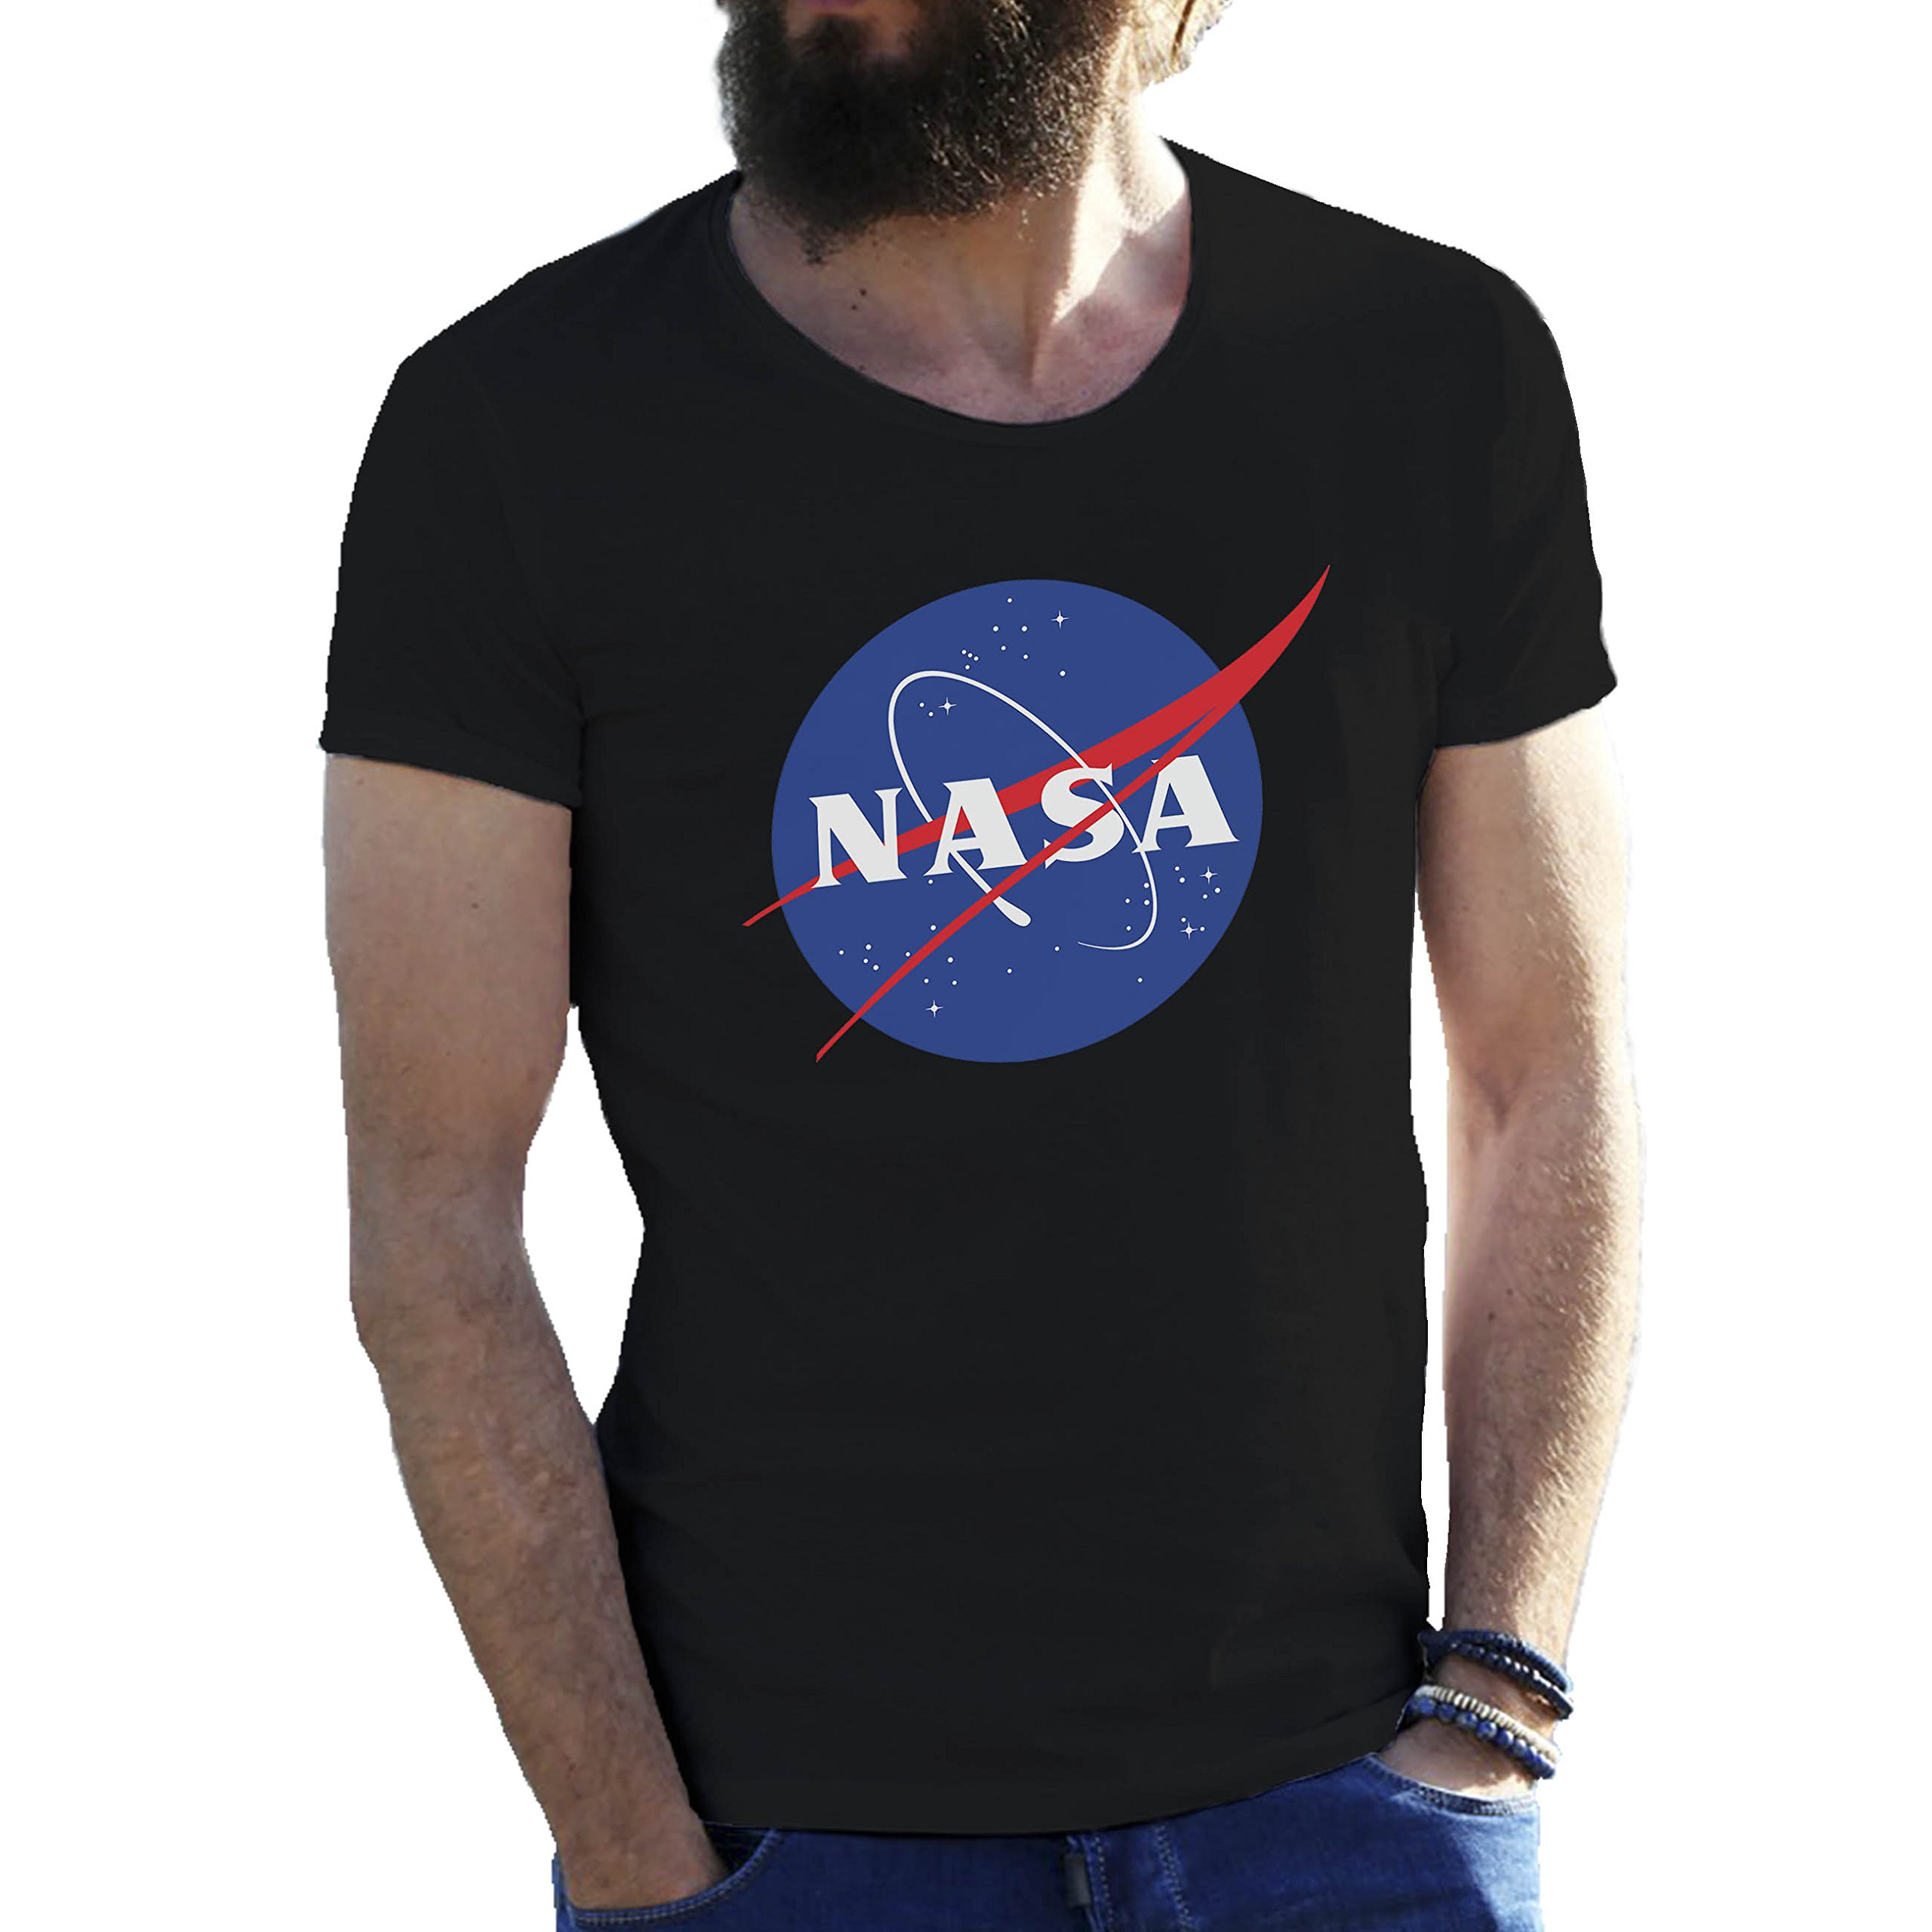 NASA Space Astronaut Logo Retro Scientist Meatball Geek Big Bang Theory Gift Black Mens T-Shirt in Extra Large Sizes 5X Large